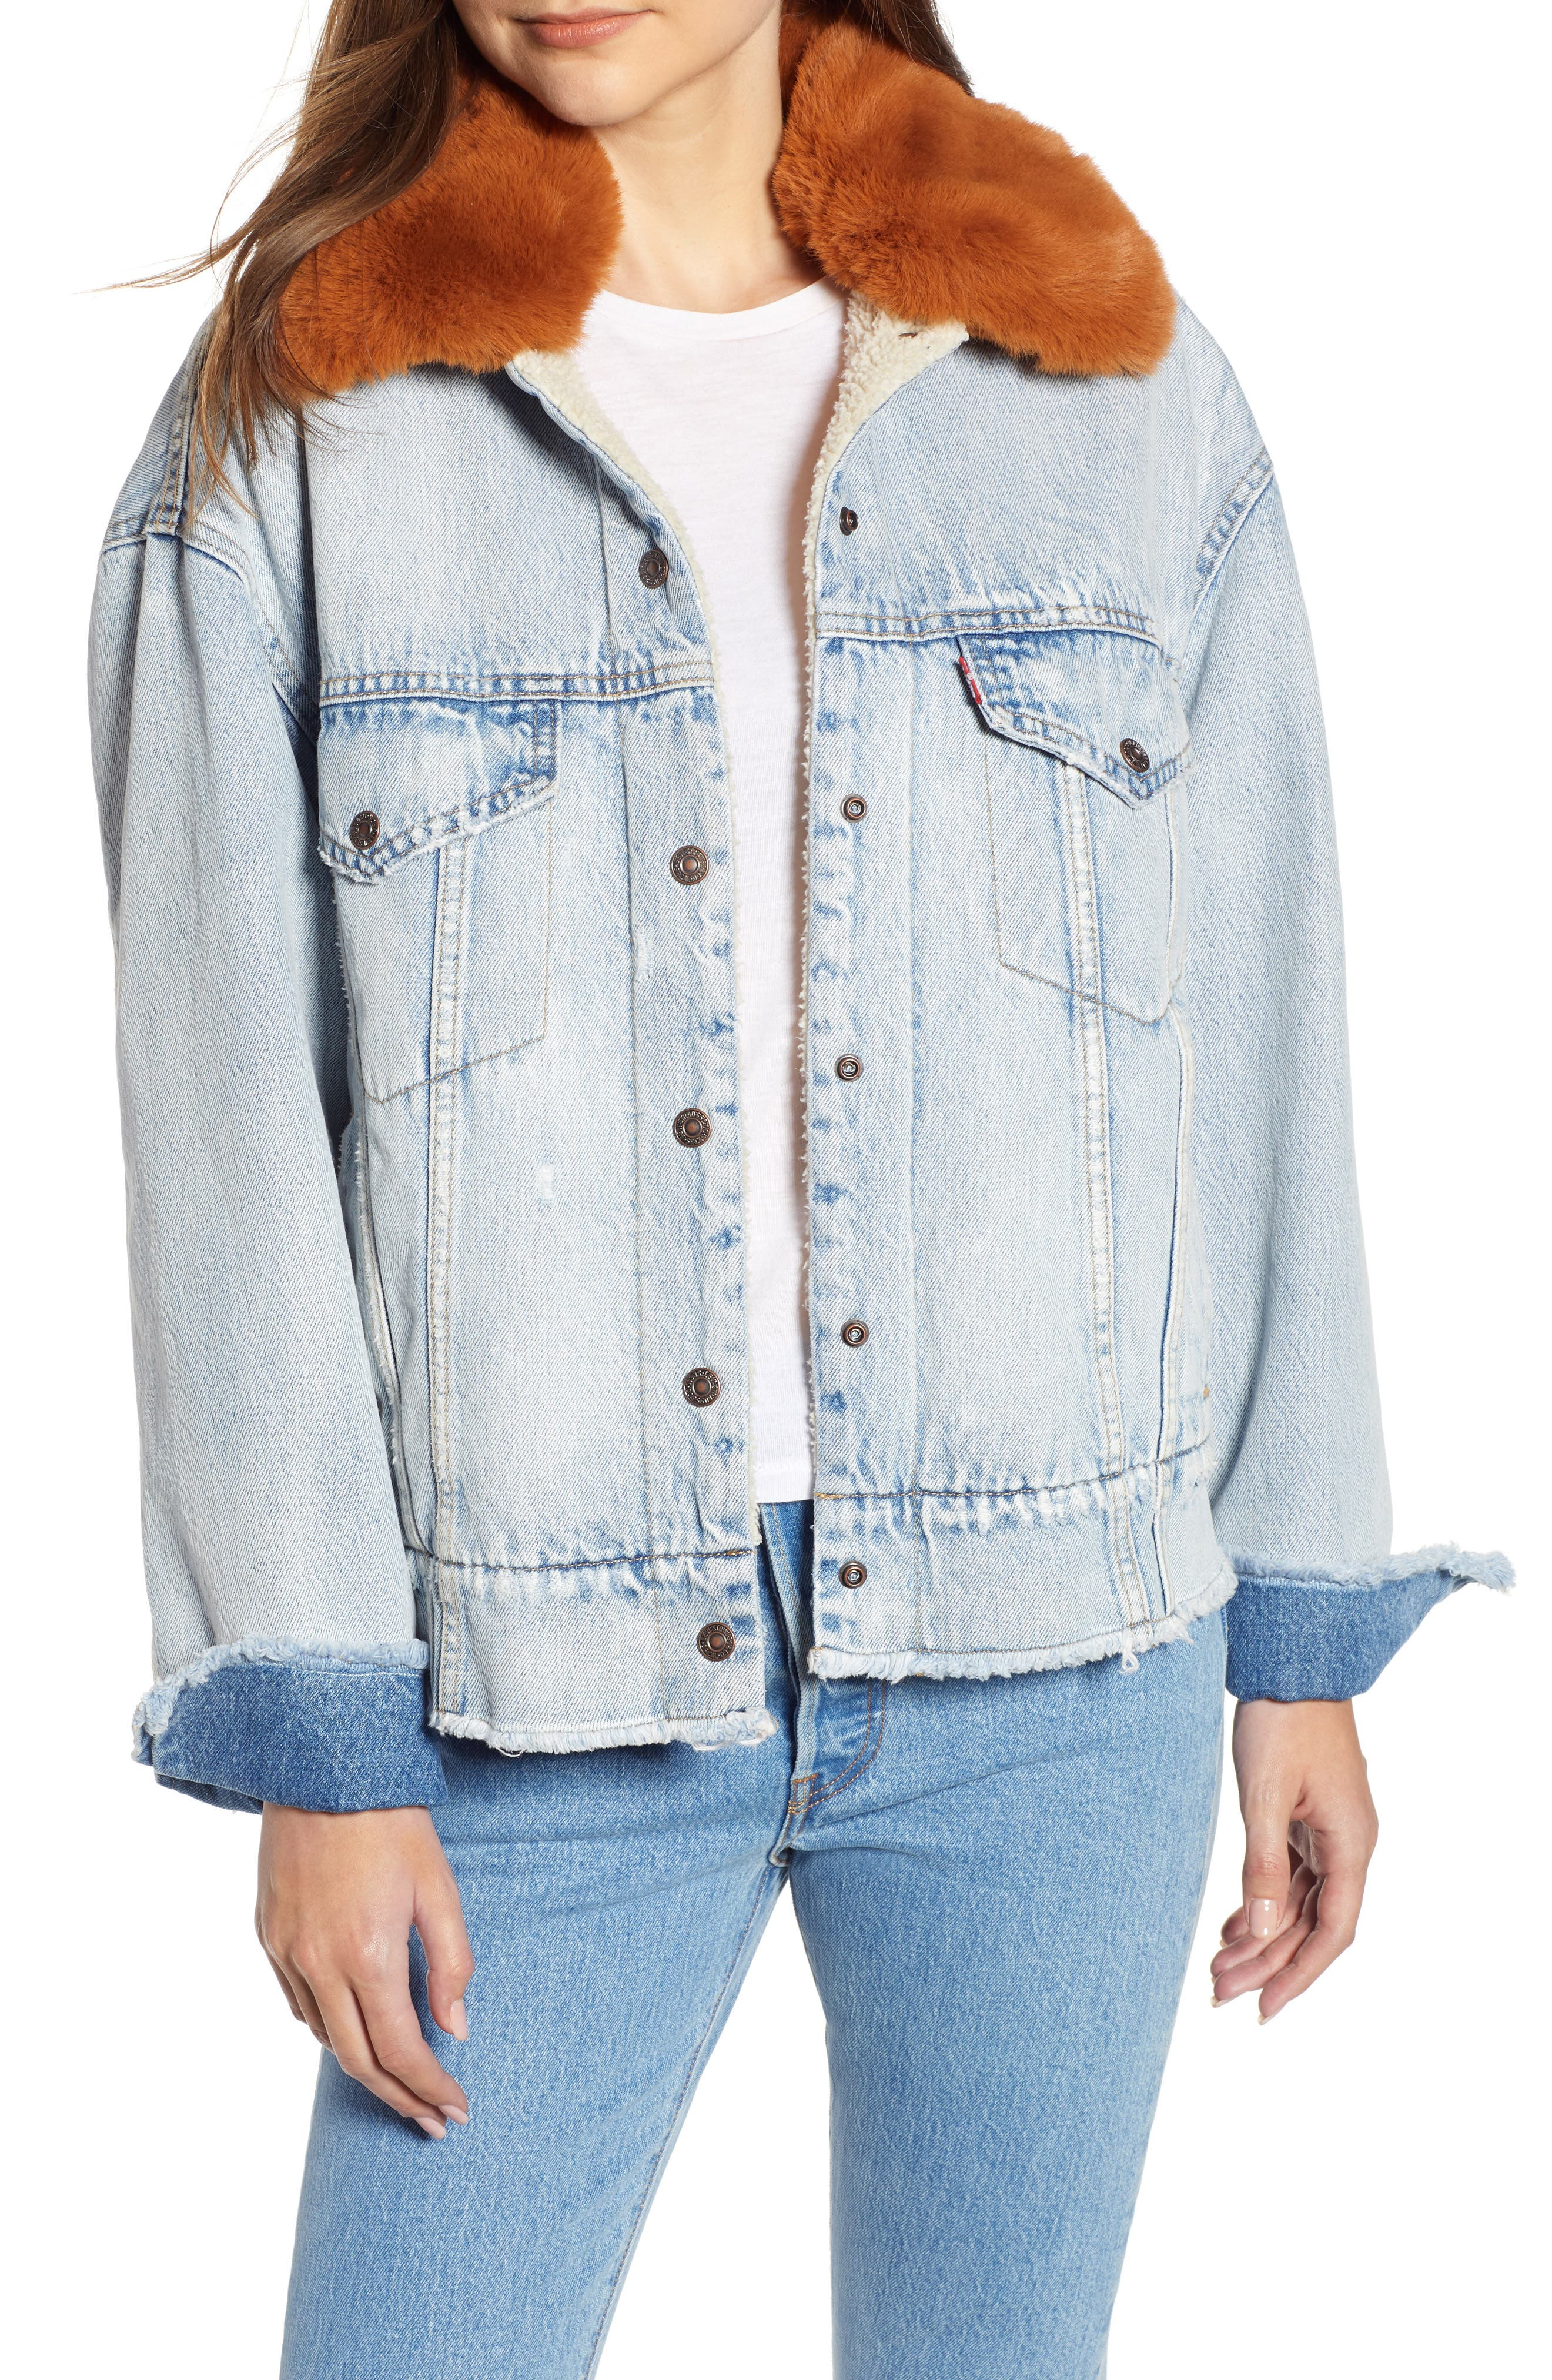 Oversize Faux Shearling Lined Denim Trucker Jacket With Removable Faux Fur Collar by Levi's®